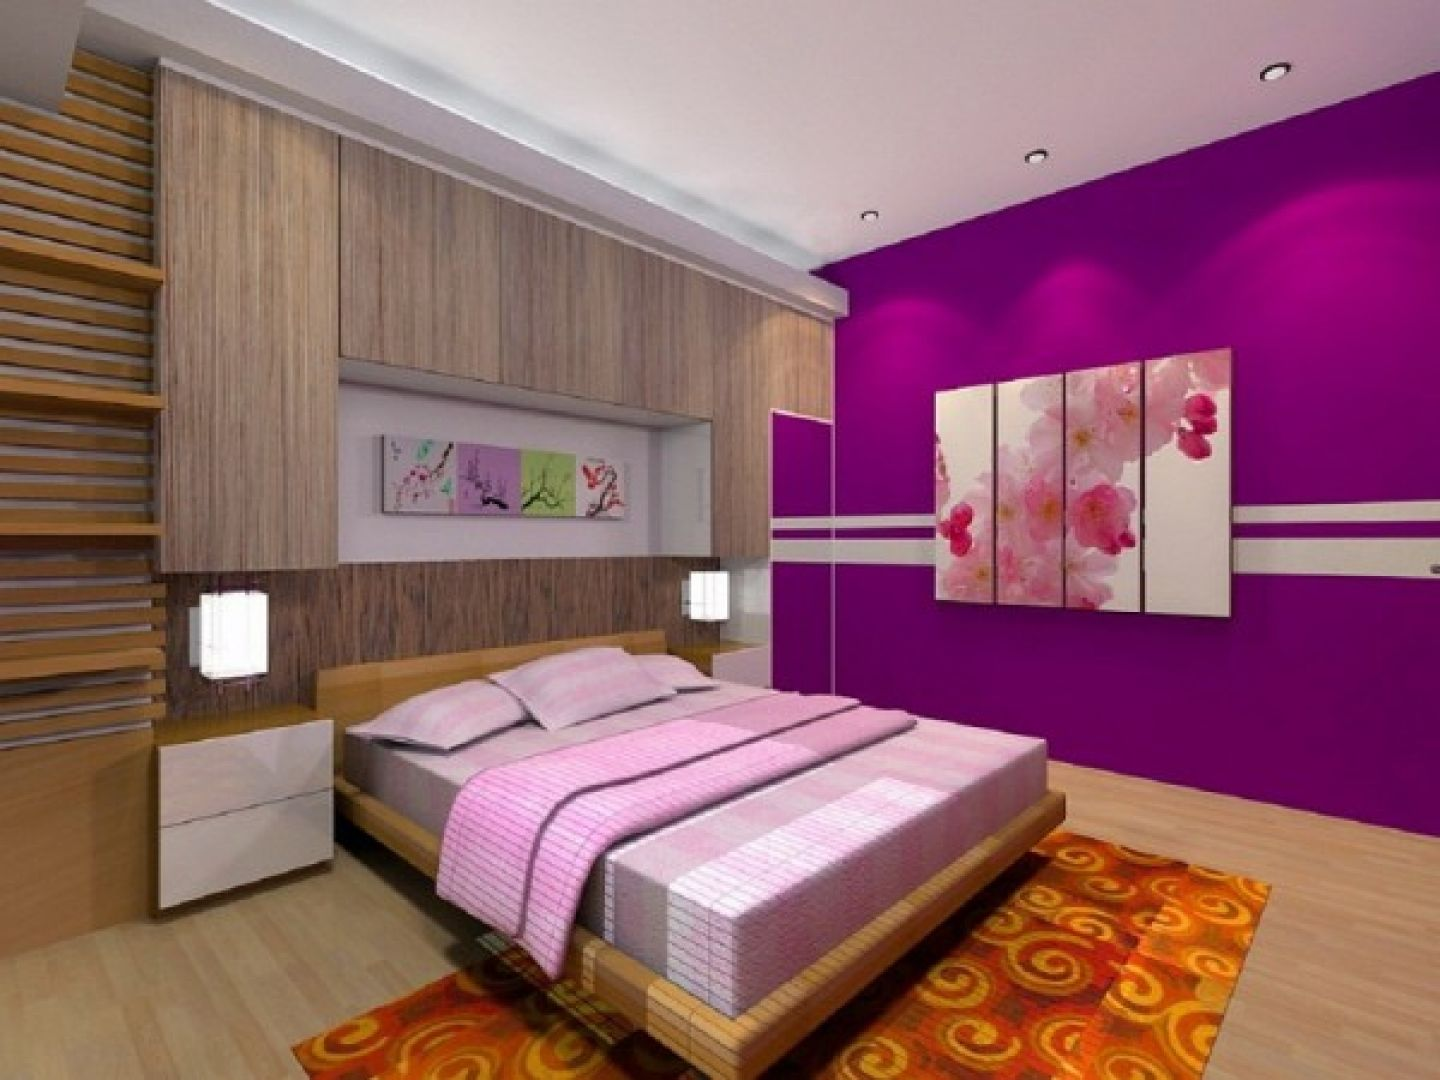 Bedroom designs for women in their 20s - Bedroom Cool Bedroom Design For Women In Their 20s With Purple Color Schemes And Modern